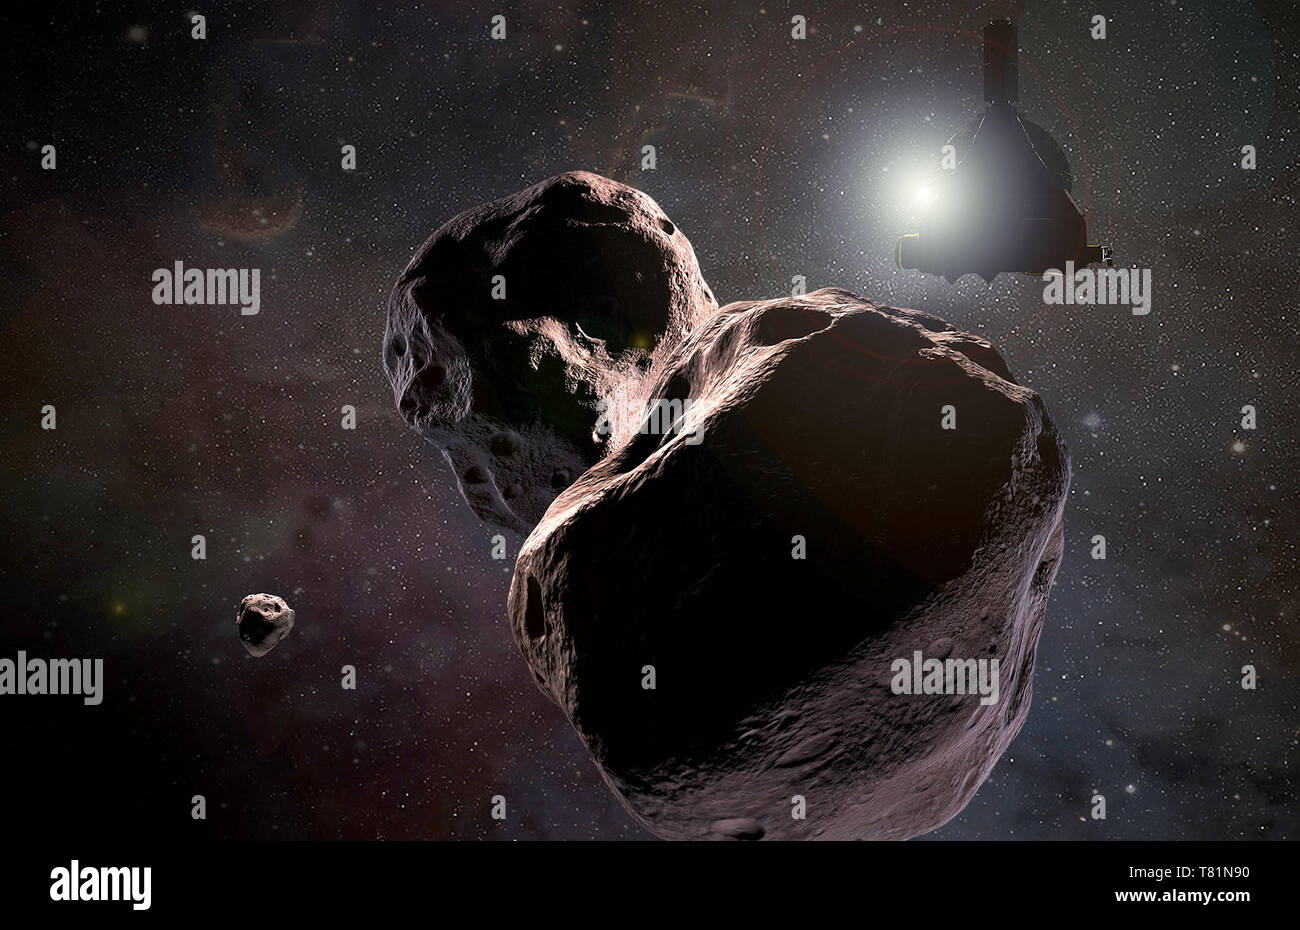 Ultima Thule Visited by New Horizons Probe, Illustration - Stock Image